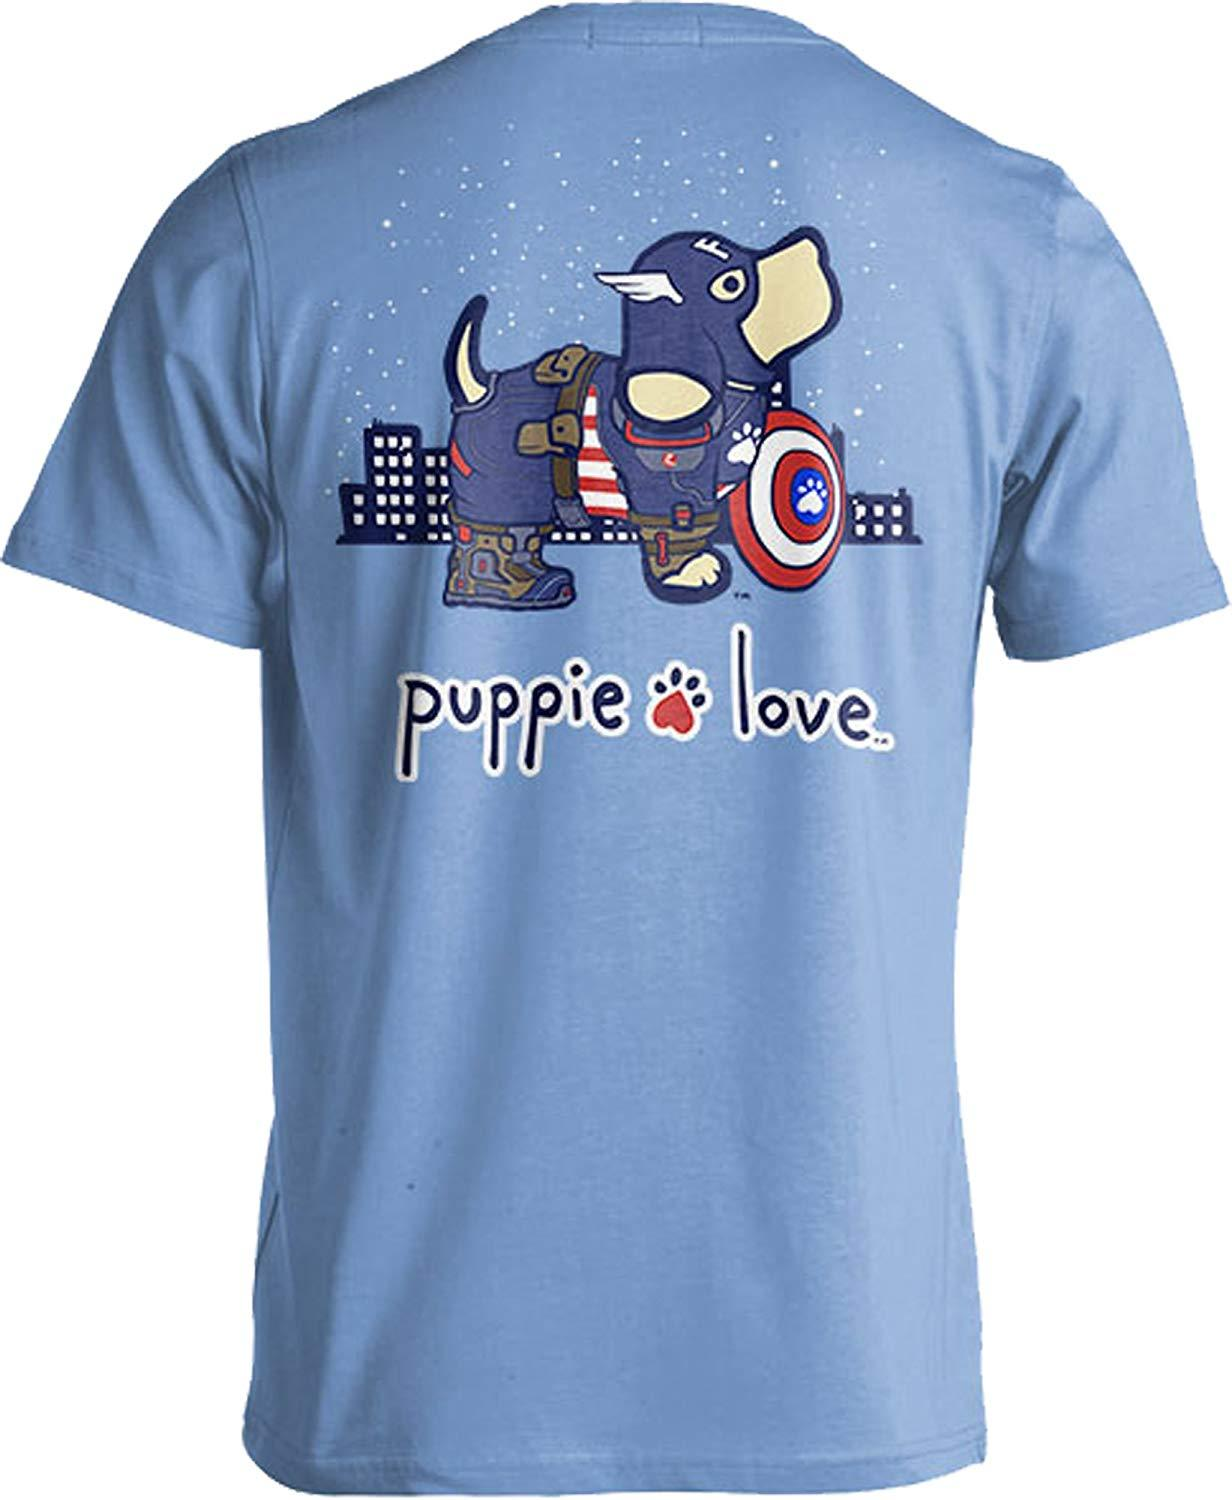 Puppie Love Rescue Dog Adult Unisex Short Sleeve Graphic T-Shirt, Super Hero Pup